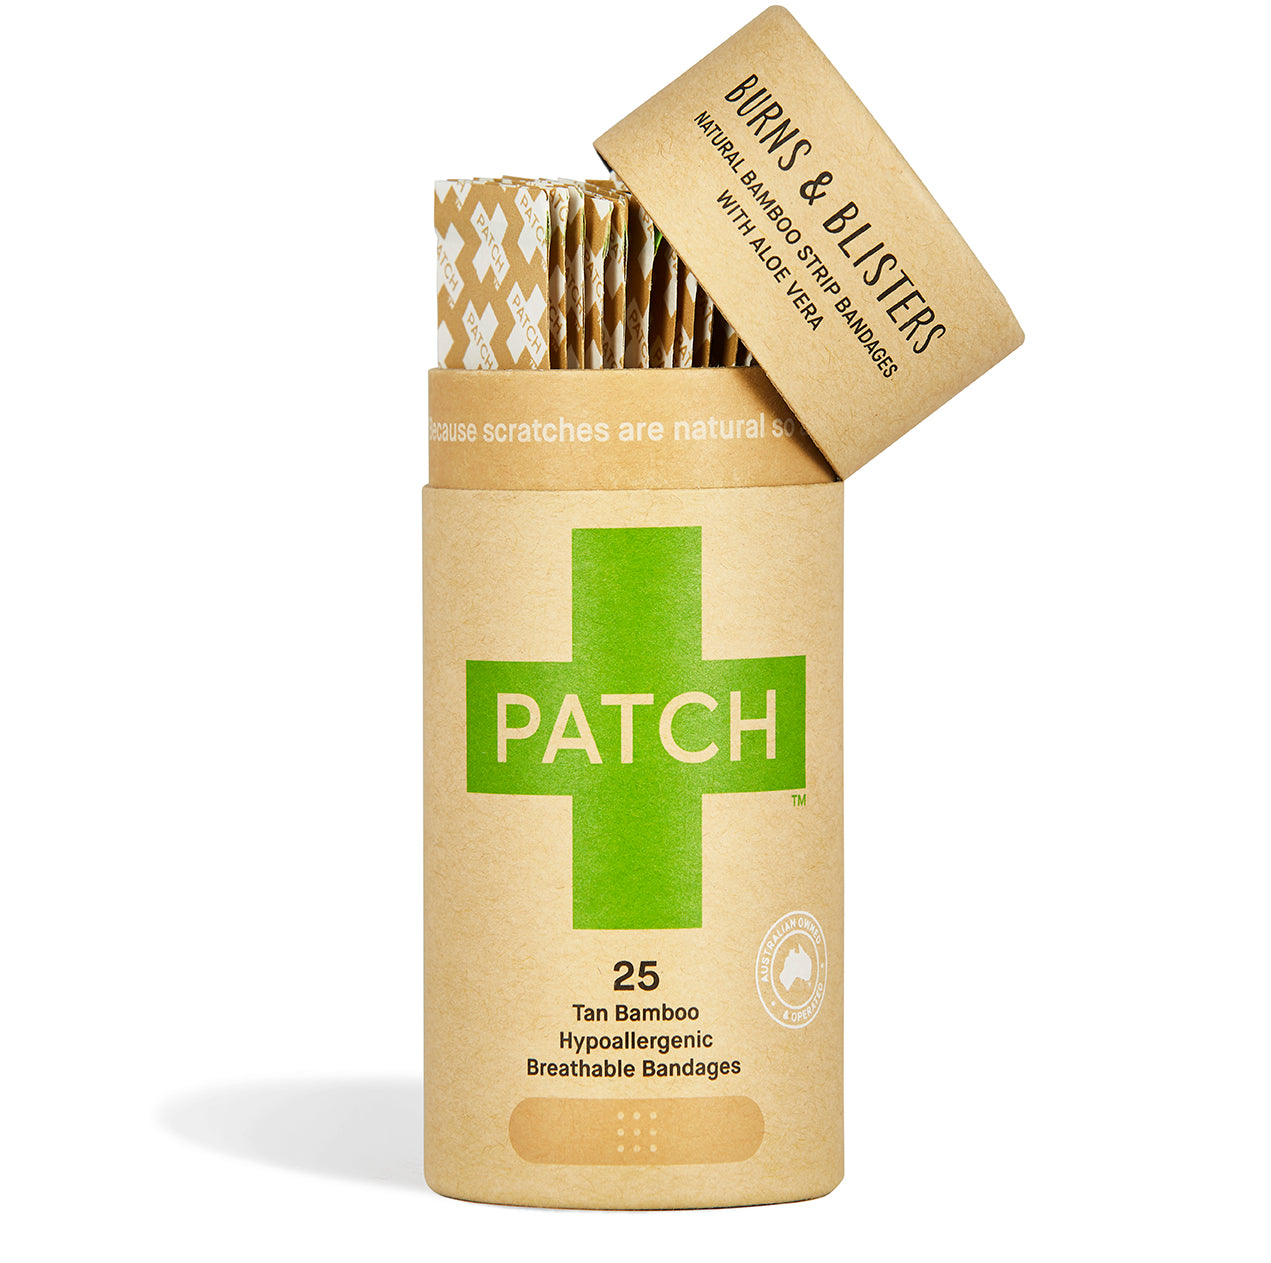 PATCH - Natural Bamboo Bandages for Burns & Blisters